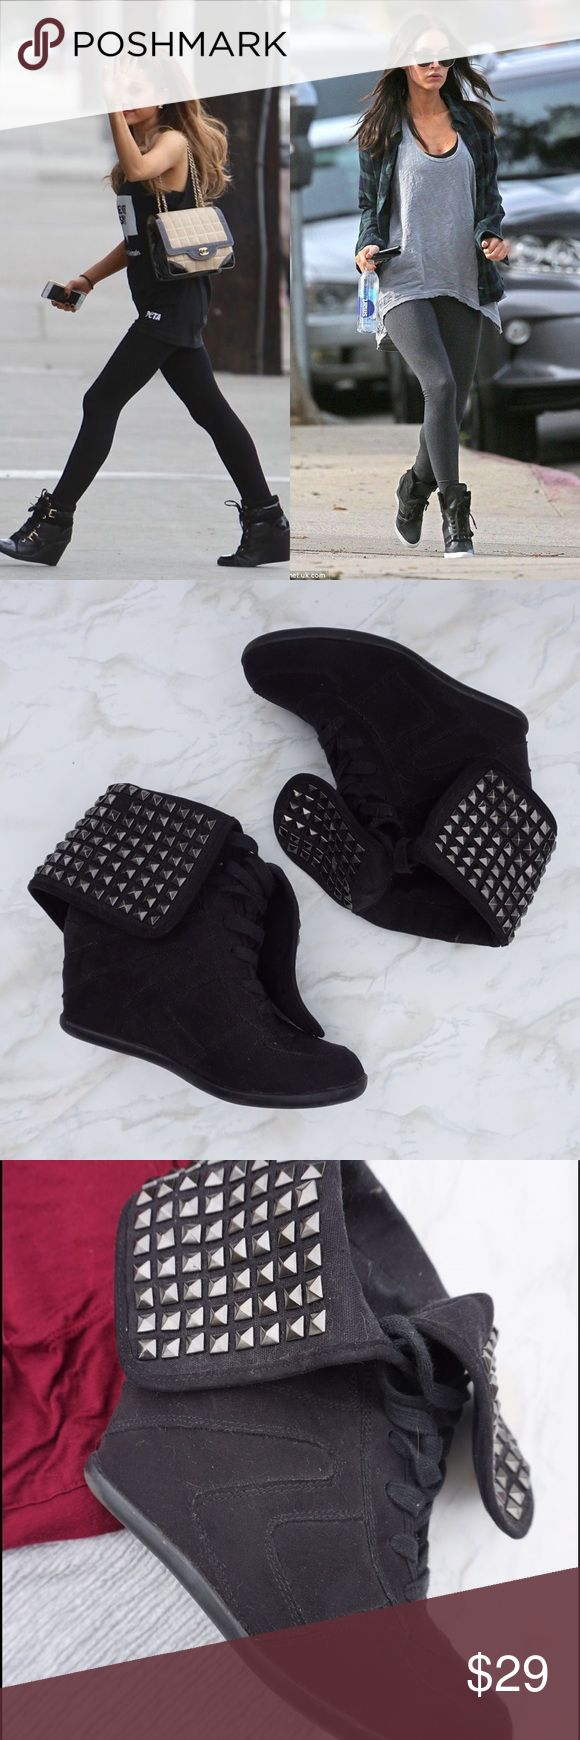 Call It Spring Black Studded Wedge Sneakers If it's good enough for Ariana Grande and Megan Fox, it's good enough for me! 🔥 These studded wedge sneakers are so on trend right now! They go with leggings, jeans, shorts, skirts, pretty much everything in your closet! Wedge heel makes them super comfortable and makes your legs look miles long. I wish I could keep them but my feet grew when I was pregnant and now they're too small!😭 In great condition, only missing one bracket as shown in the…